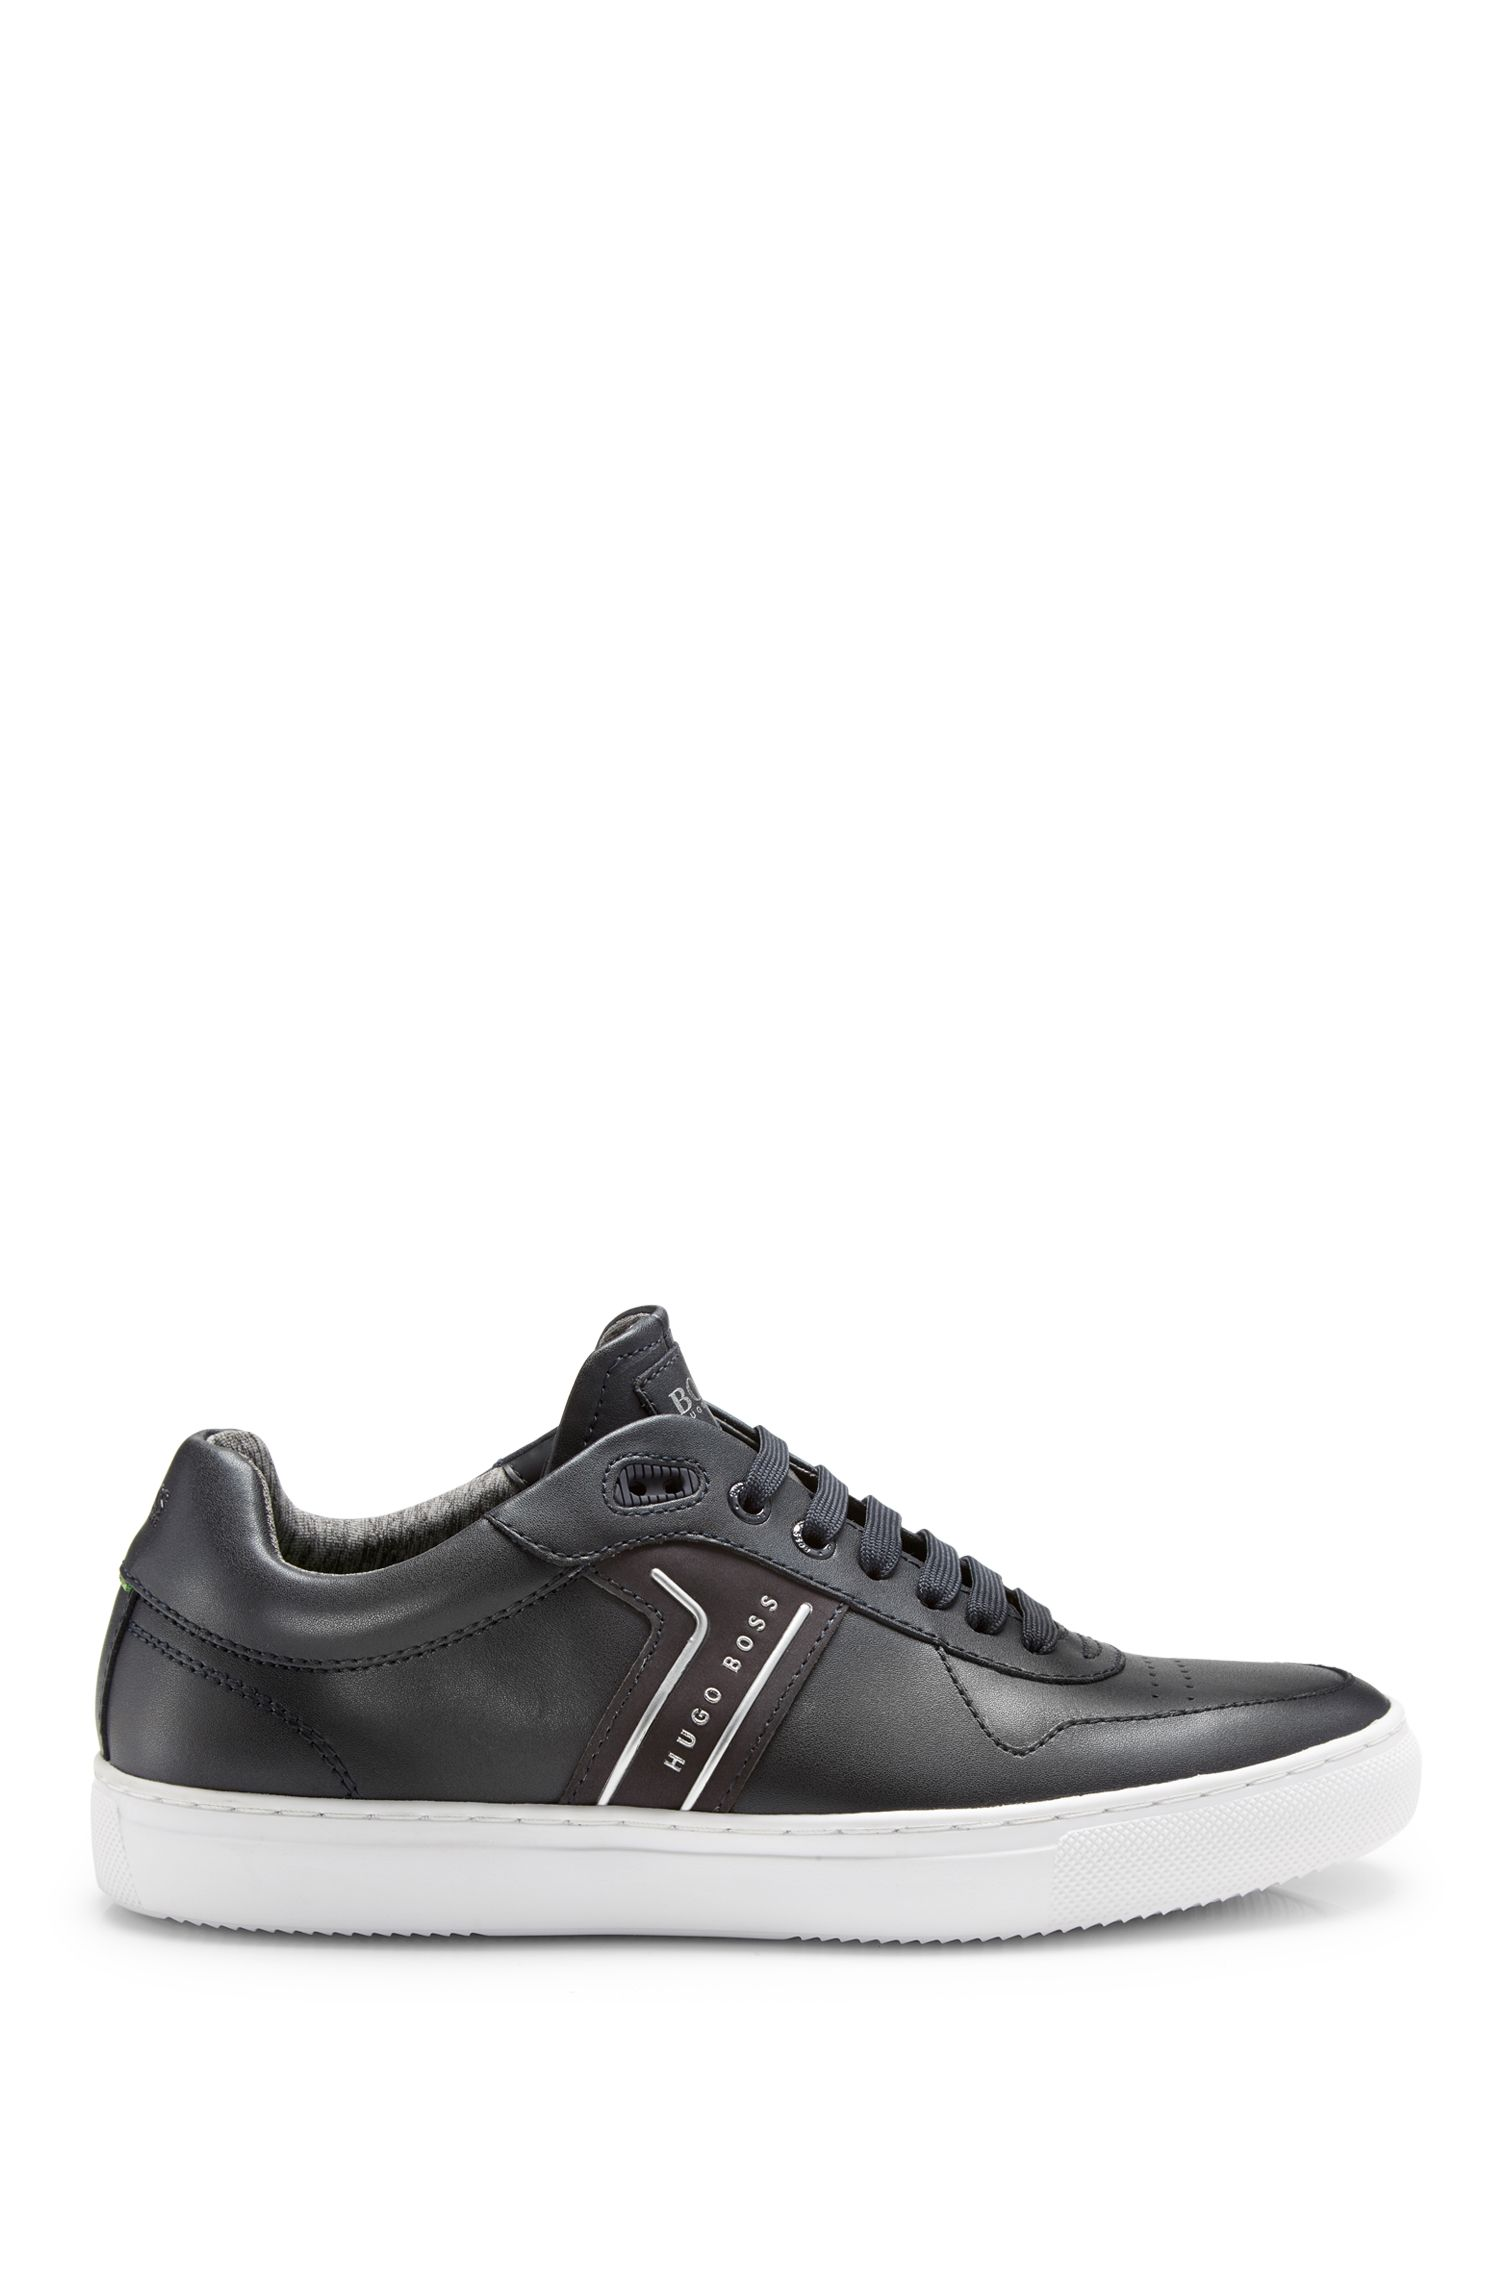 Leather Sneaker | Enlight Tenn It